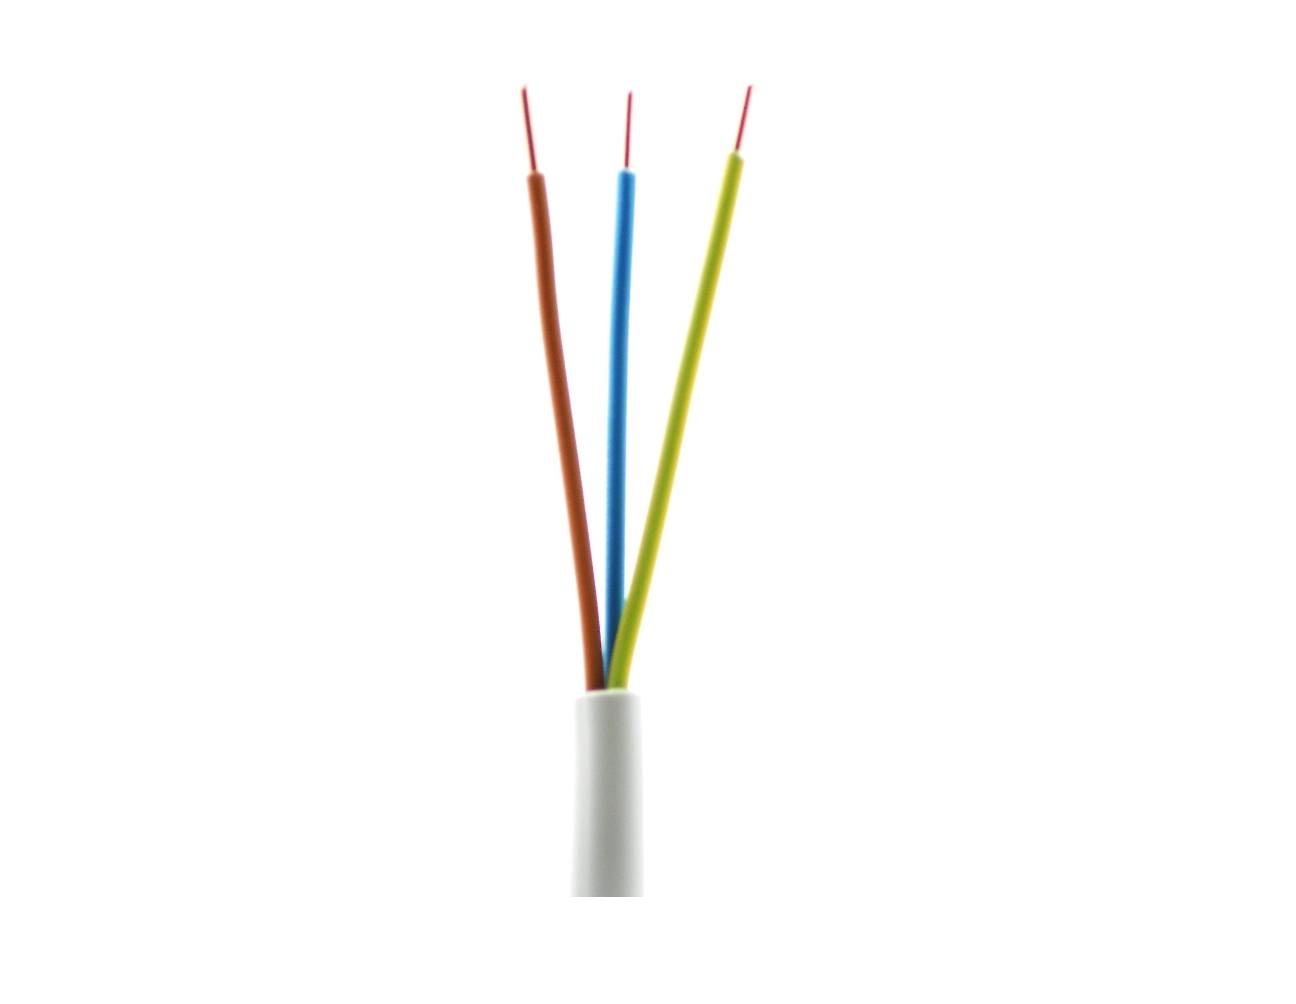 3 x1.5mm NYM-J Industrial Electrical Cable (Per 1mtr) 315NYM